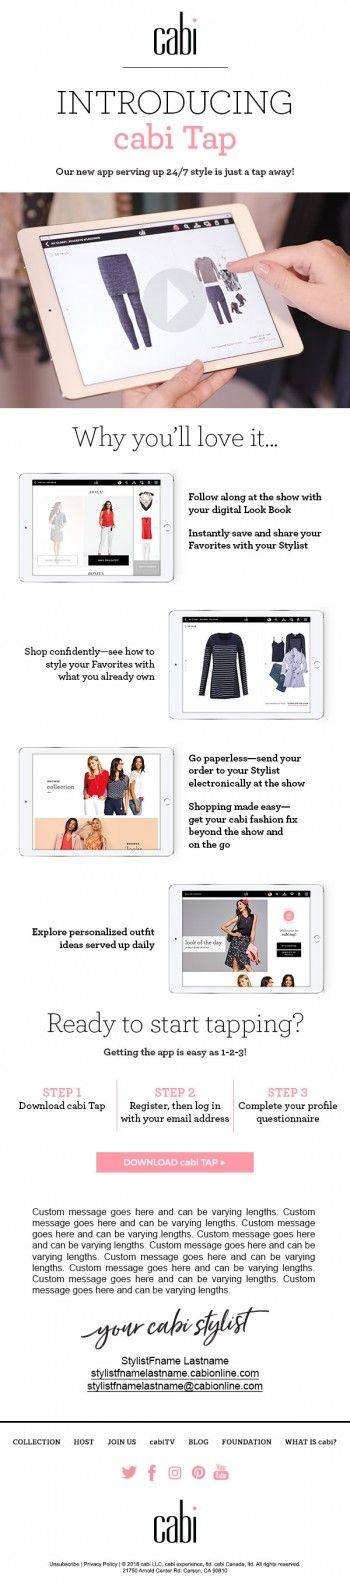 The Cool New Cabi App Cabi Tap It Is So Cool So Fun And So Useful Check It Out Jeanettemurphey Cabionline Co Cabi Putting Outfits Together Personal Style